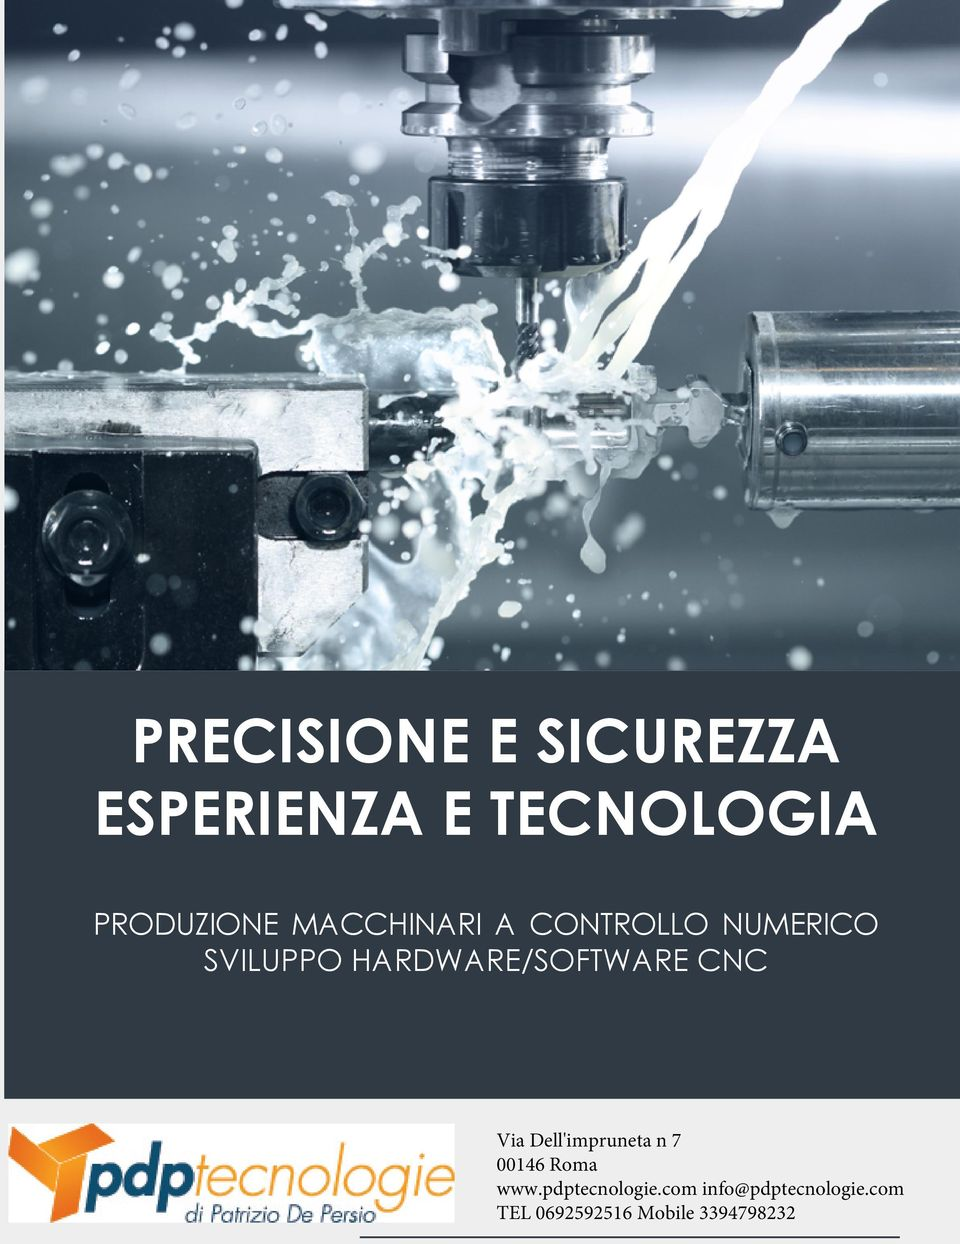 HARDWARE/SOFTWARE CNC Via Dell'impruneta n 7 00146 Roma